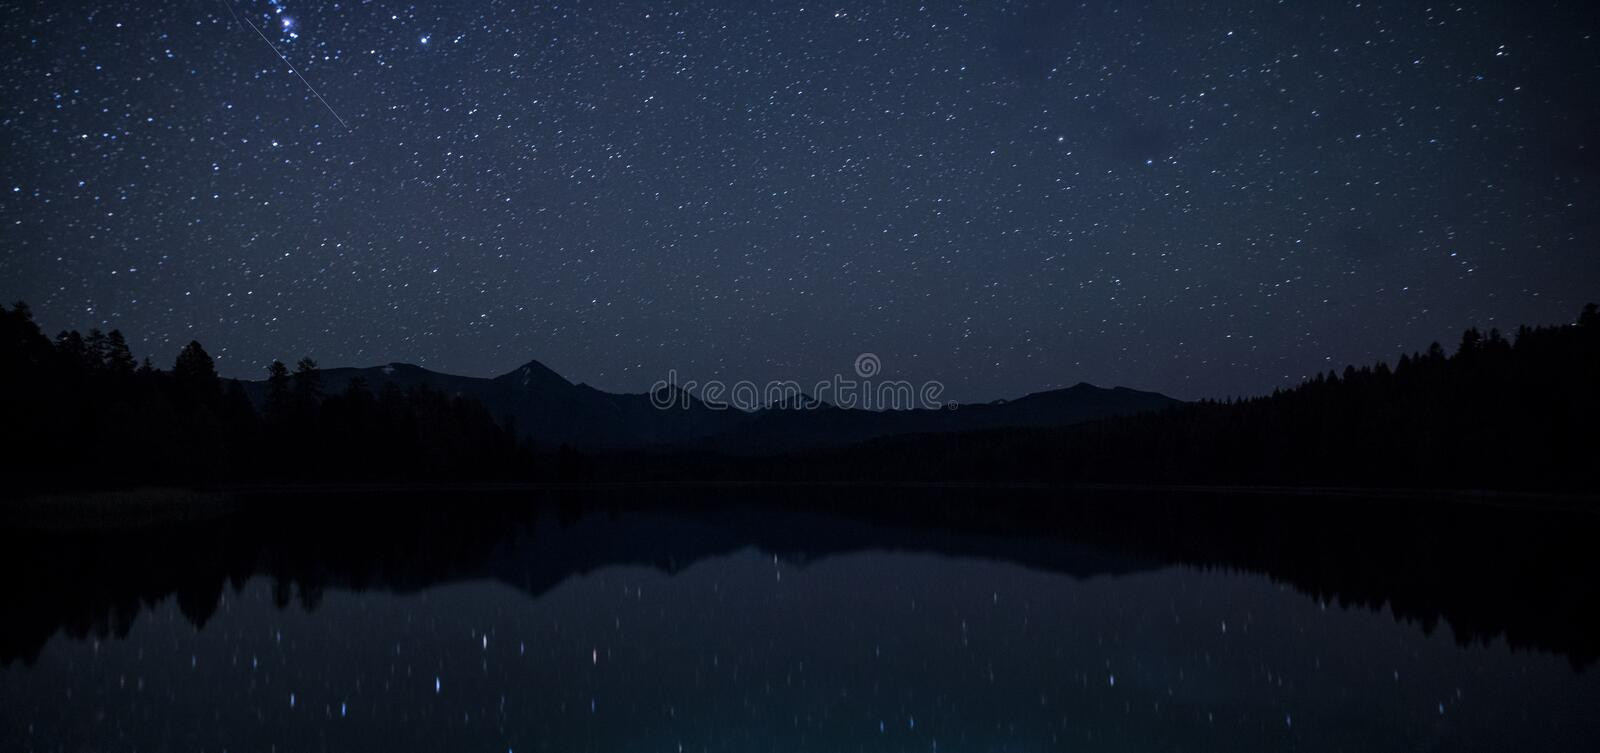 Mirror Surface Lake Breathtaking Landscape With Mountain Range At Night With Sky With Myriads Of Bright Stars royalty free stock images